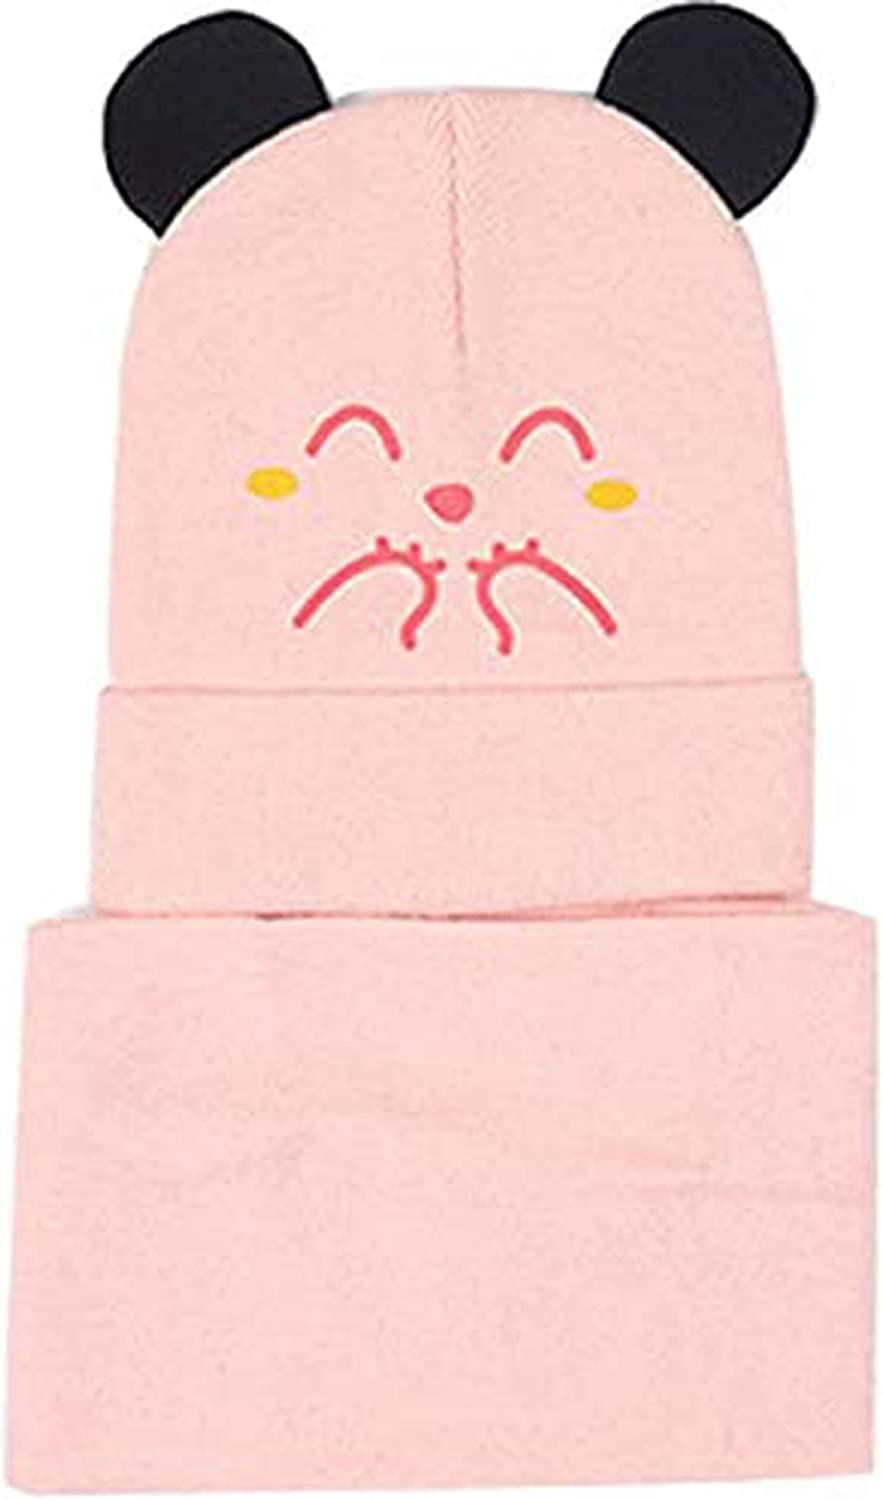 Toddler Baby Beanies Scarf Set Boys Hats Girls Thin Knitted Cap For Kids Soft Warm Winter Cute Cartoon Cat Hat (Cat Pink)